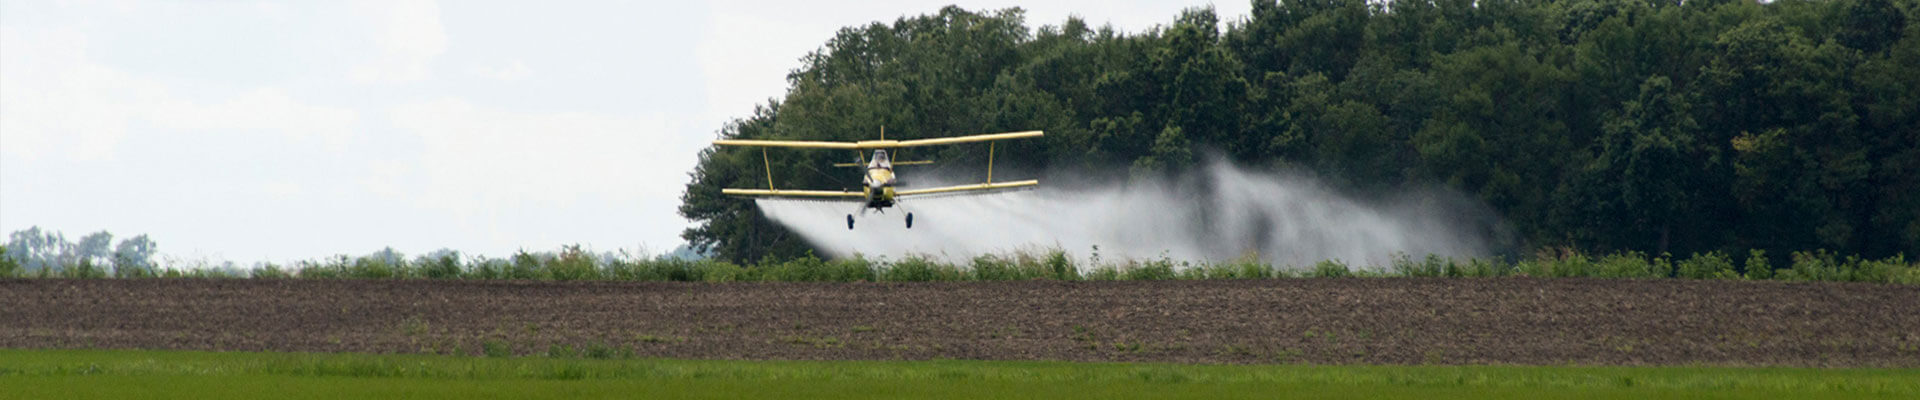 crop duster flying low over a field